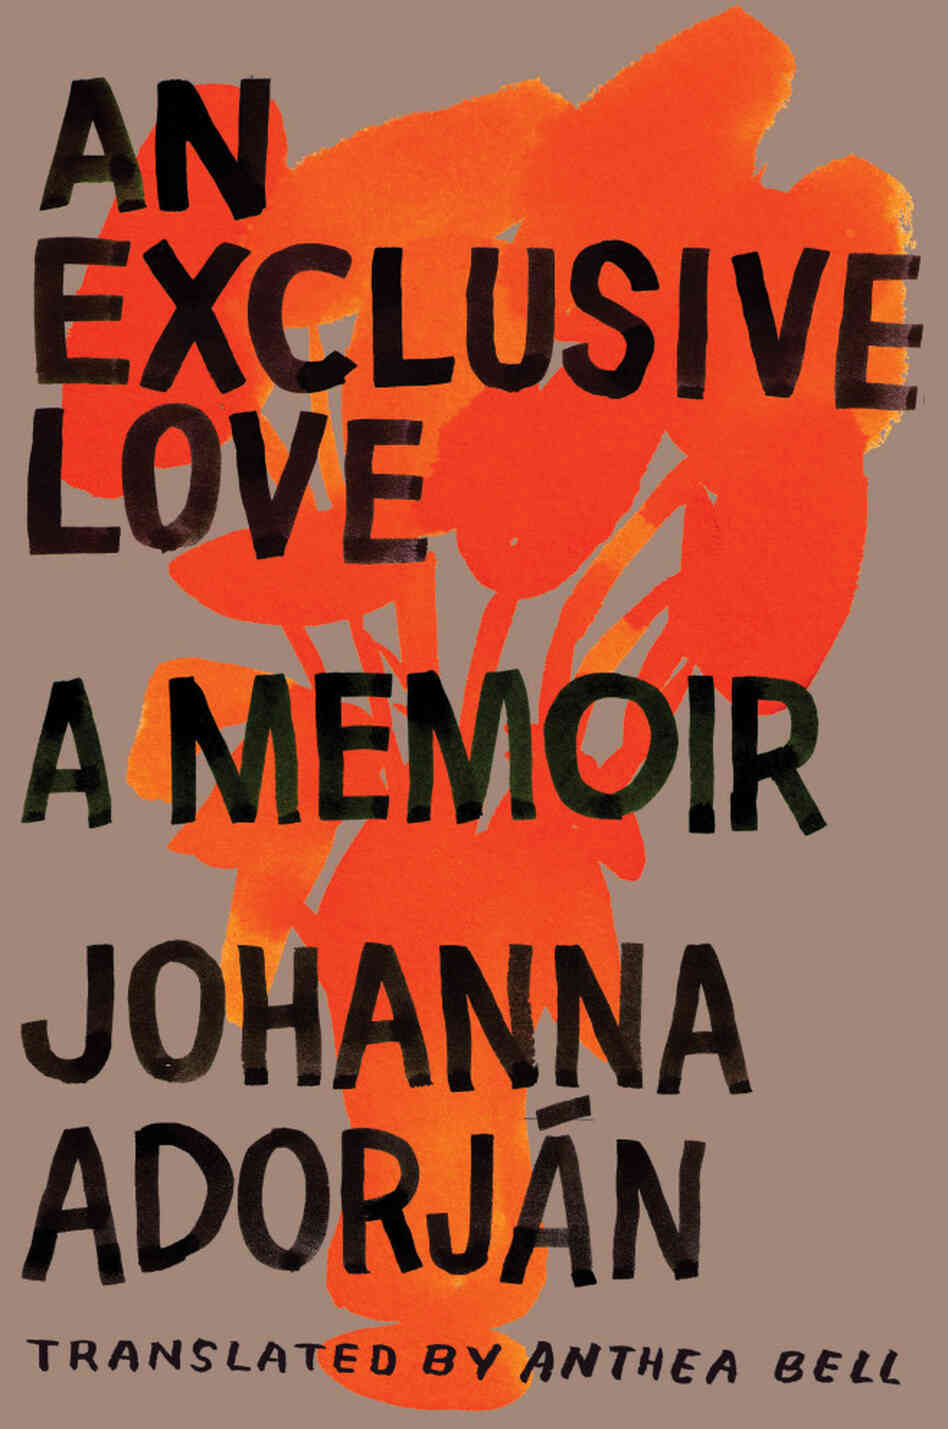 An Exclusive Love: A Memoir by Johanna Adorjan